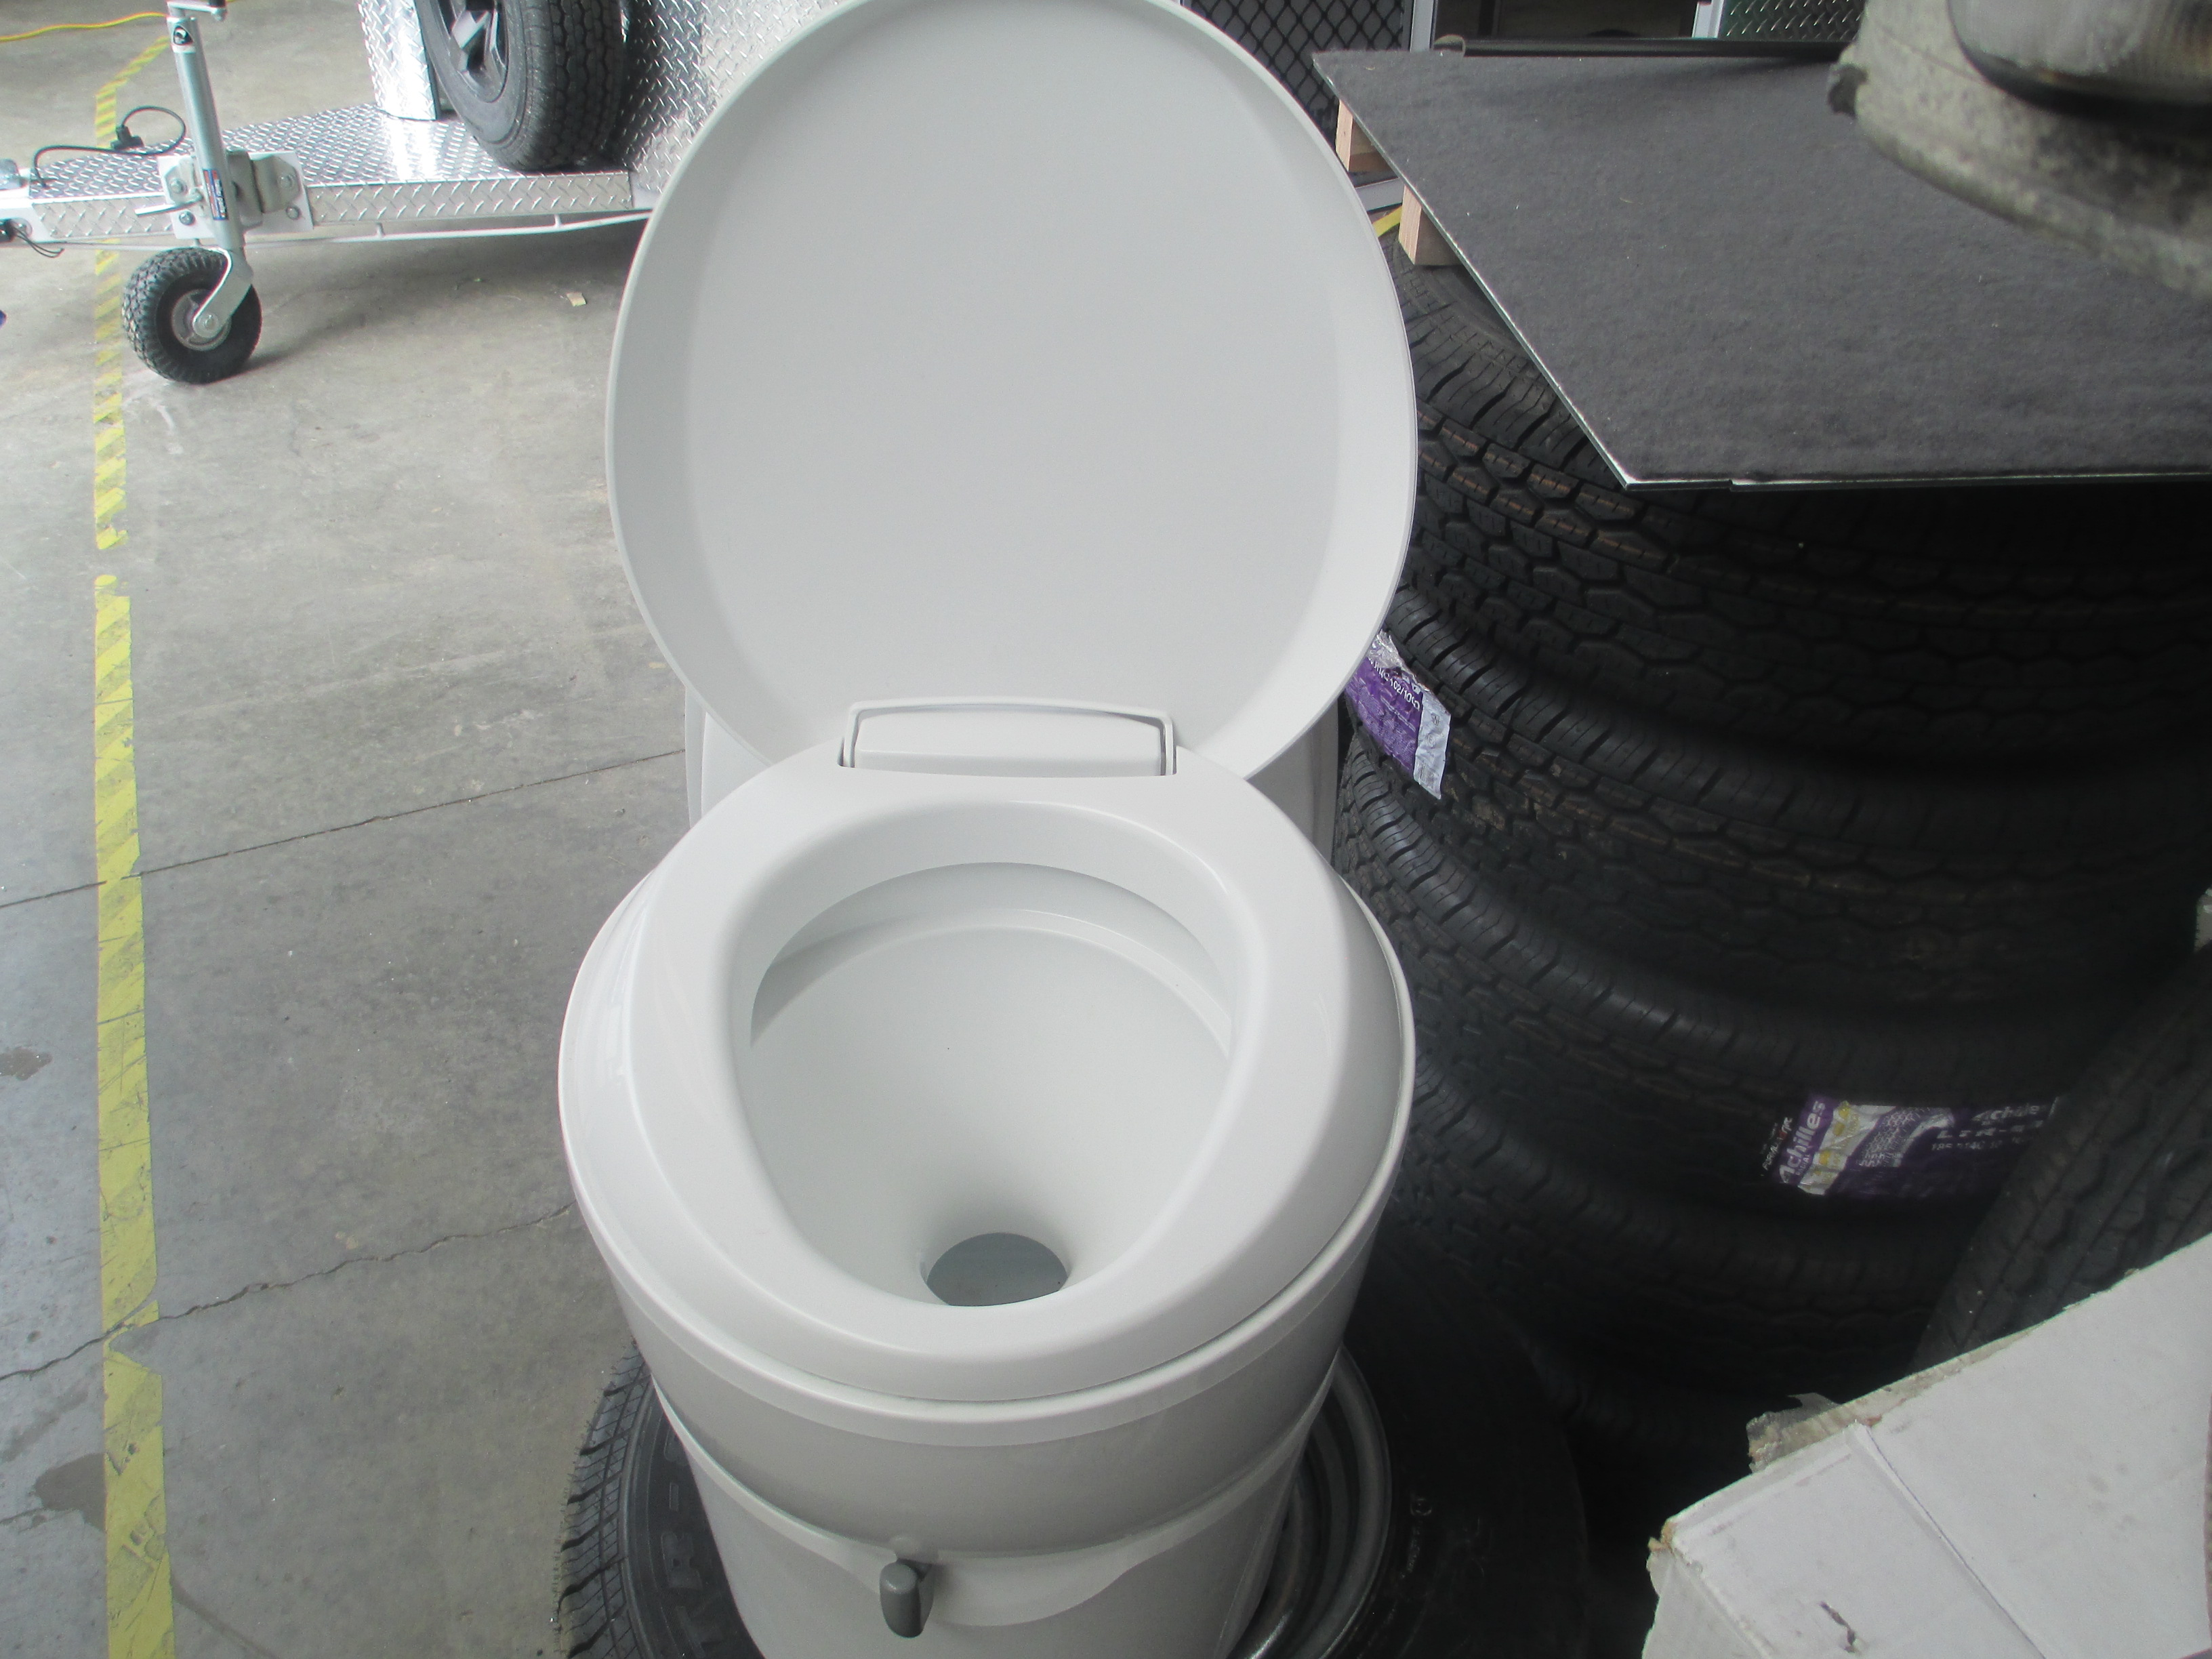 Thetford C223cs Swivel Toilet With Access Door Included